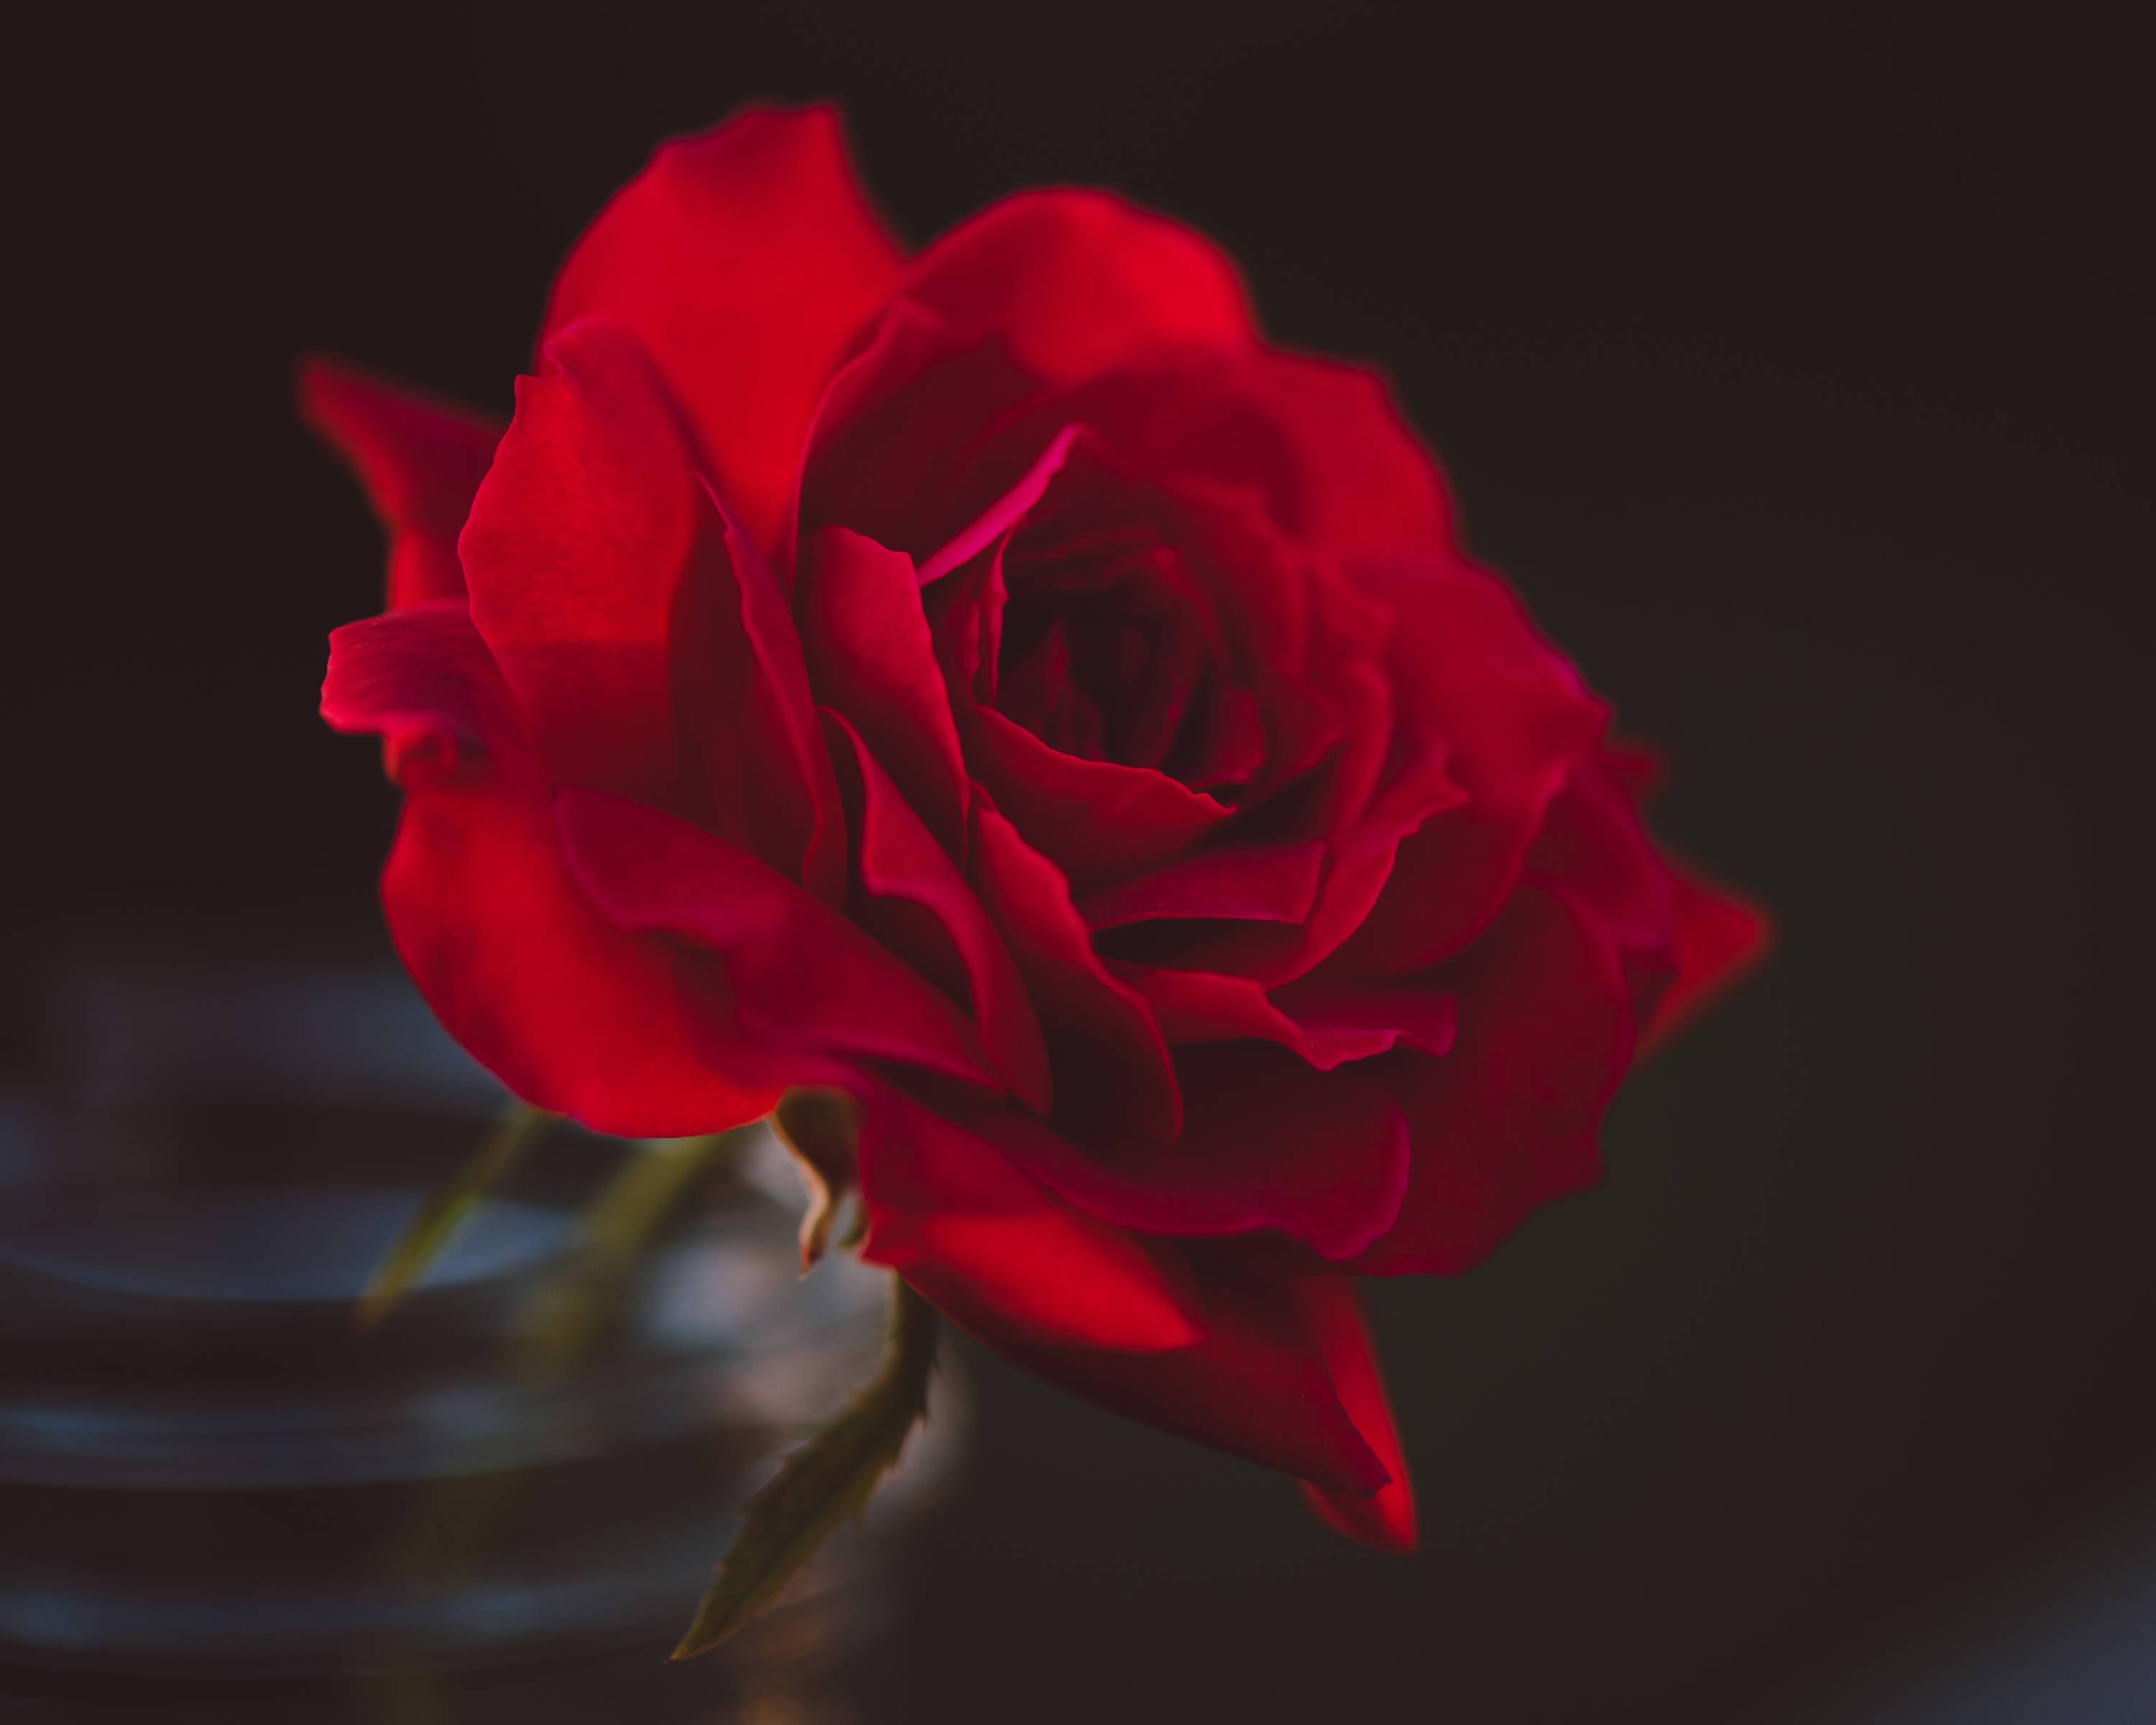 Rose Art Photography Red Rose Red Rose Photography Red Rose For Latest Red Rose Wall Art (View 16 of 20)